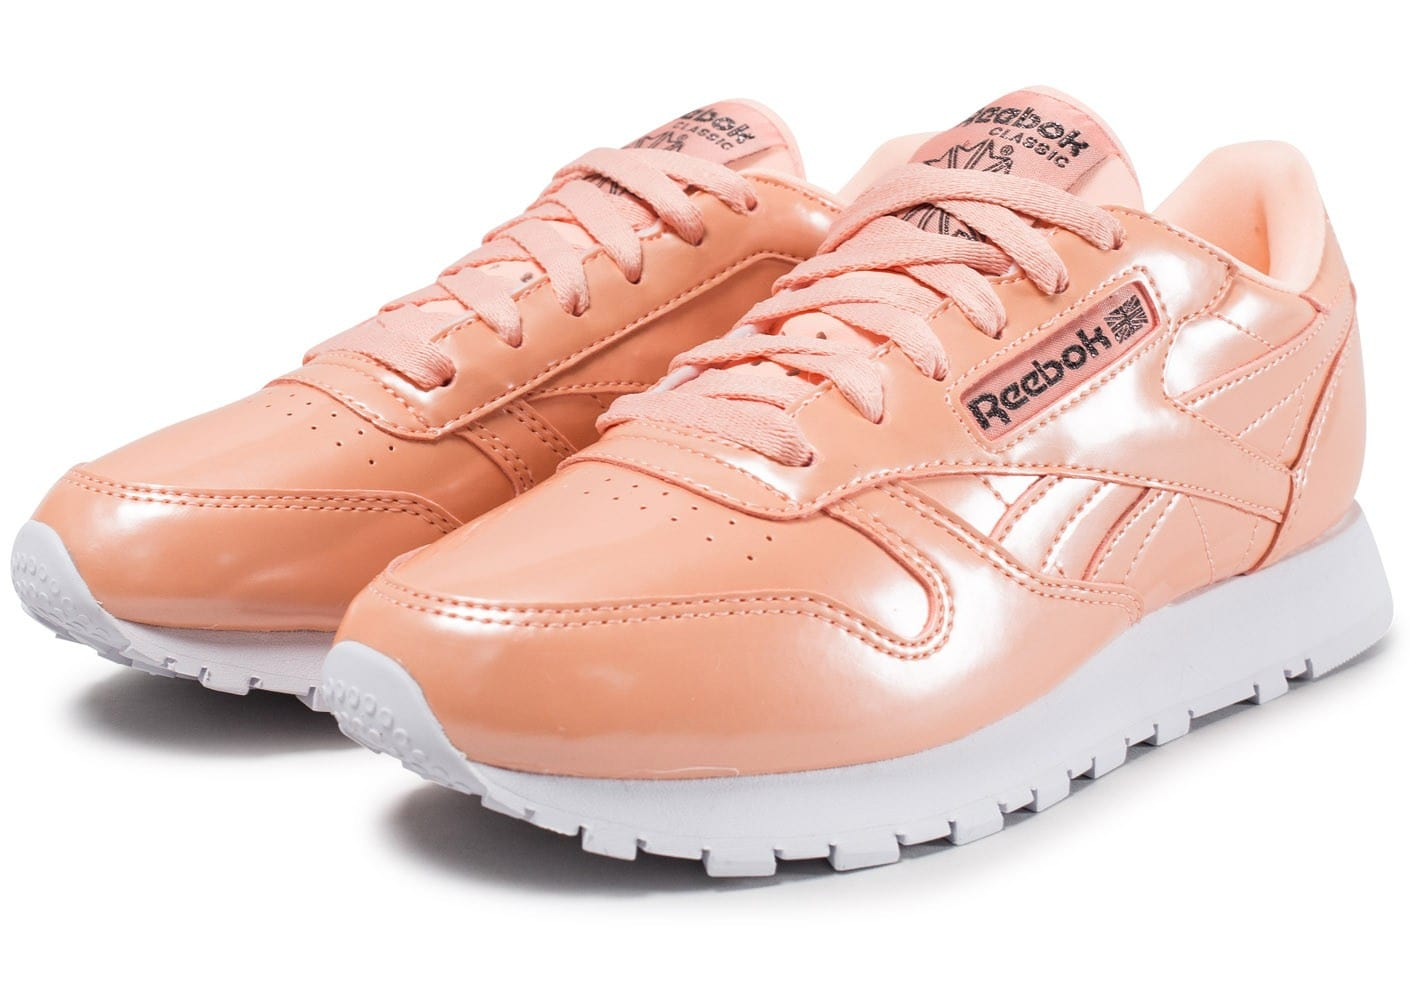 reebok classic leather pp orange chaussures black friday chausport. Black Bedroom Furniture Sets. Home Design Ideas